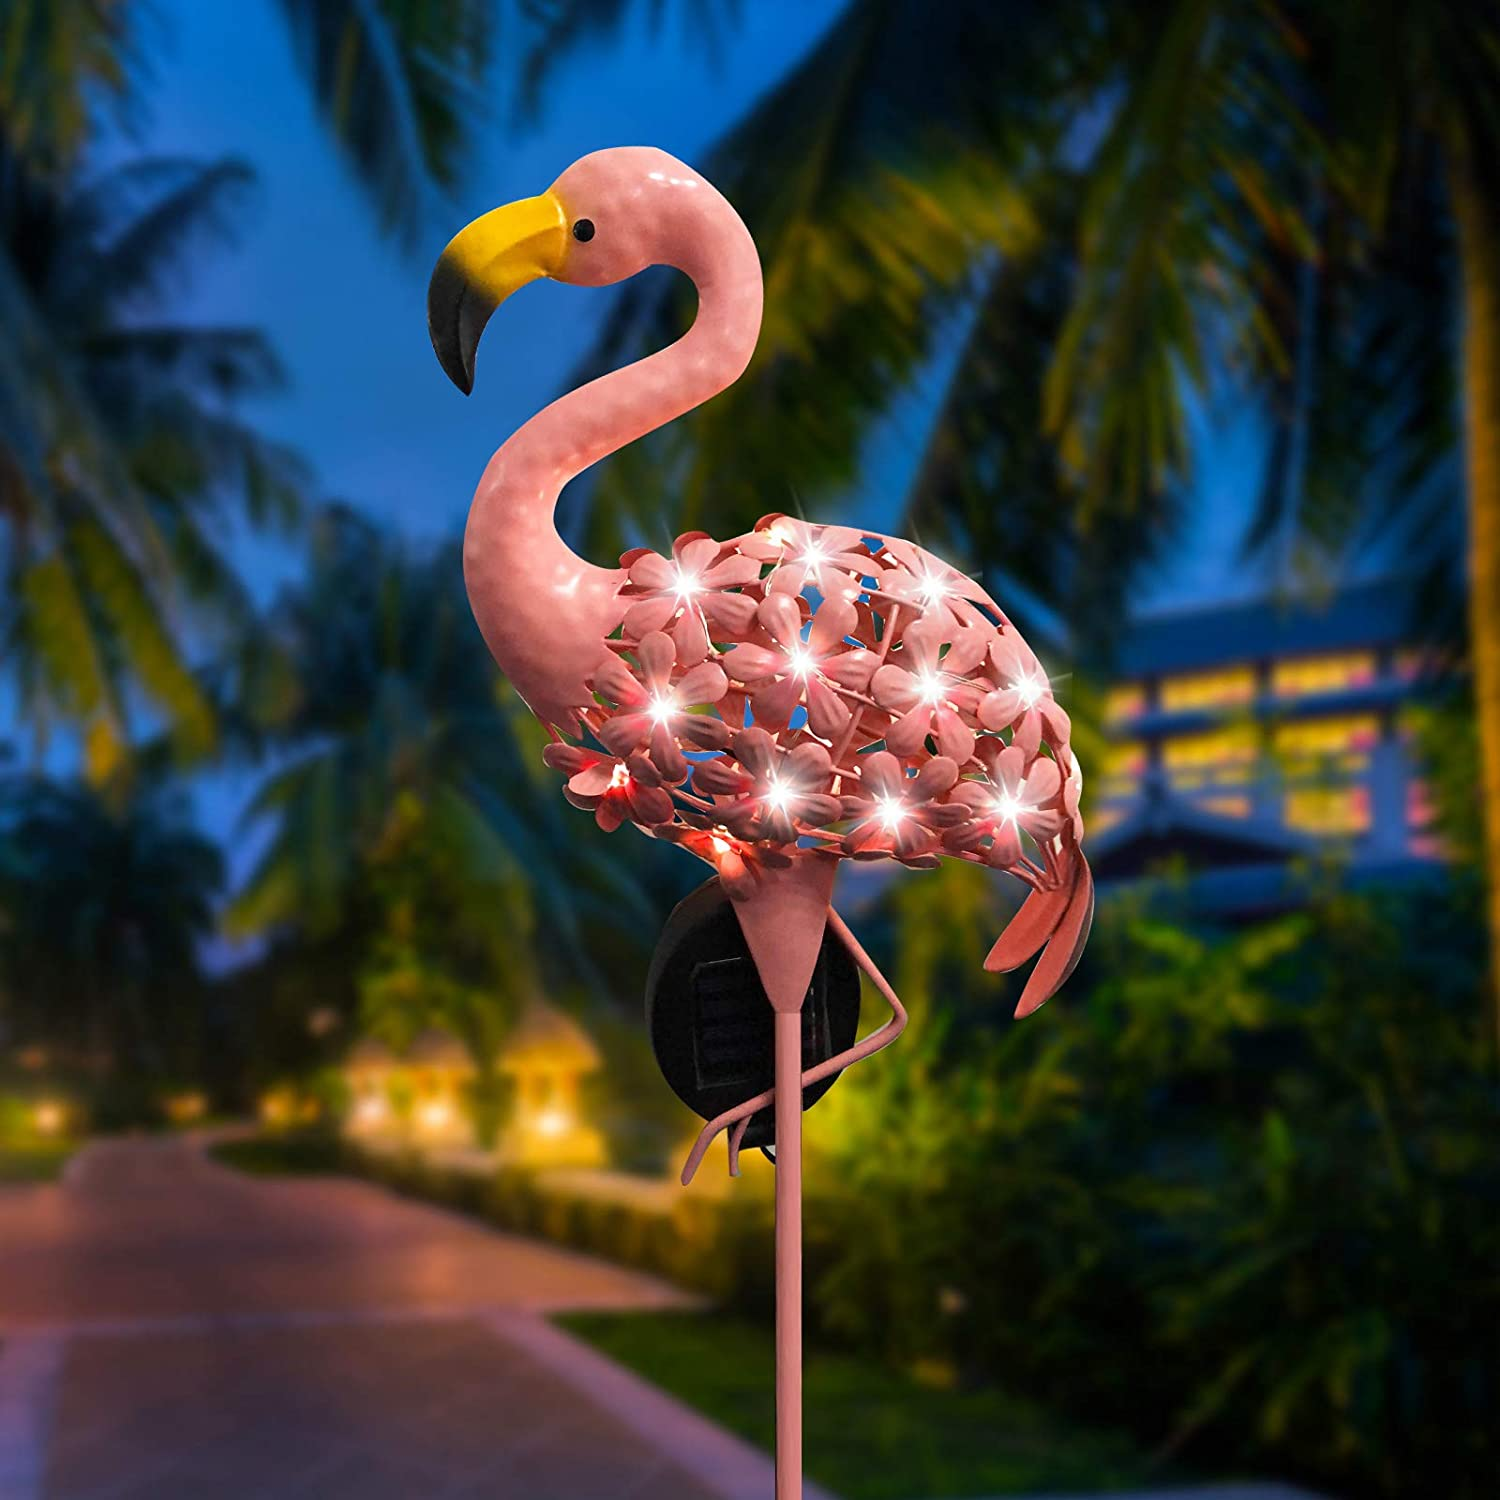 SANKUU Garden Solar Lights, Flamingo Pathway Outdoor Stake Metal Stakes with LED Lights for Lawn, Patio or Courtyard